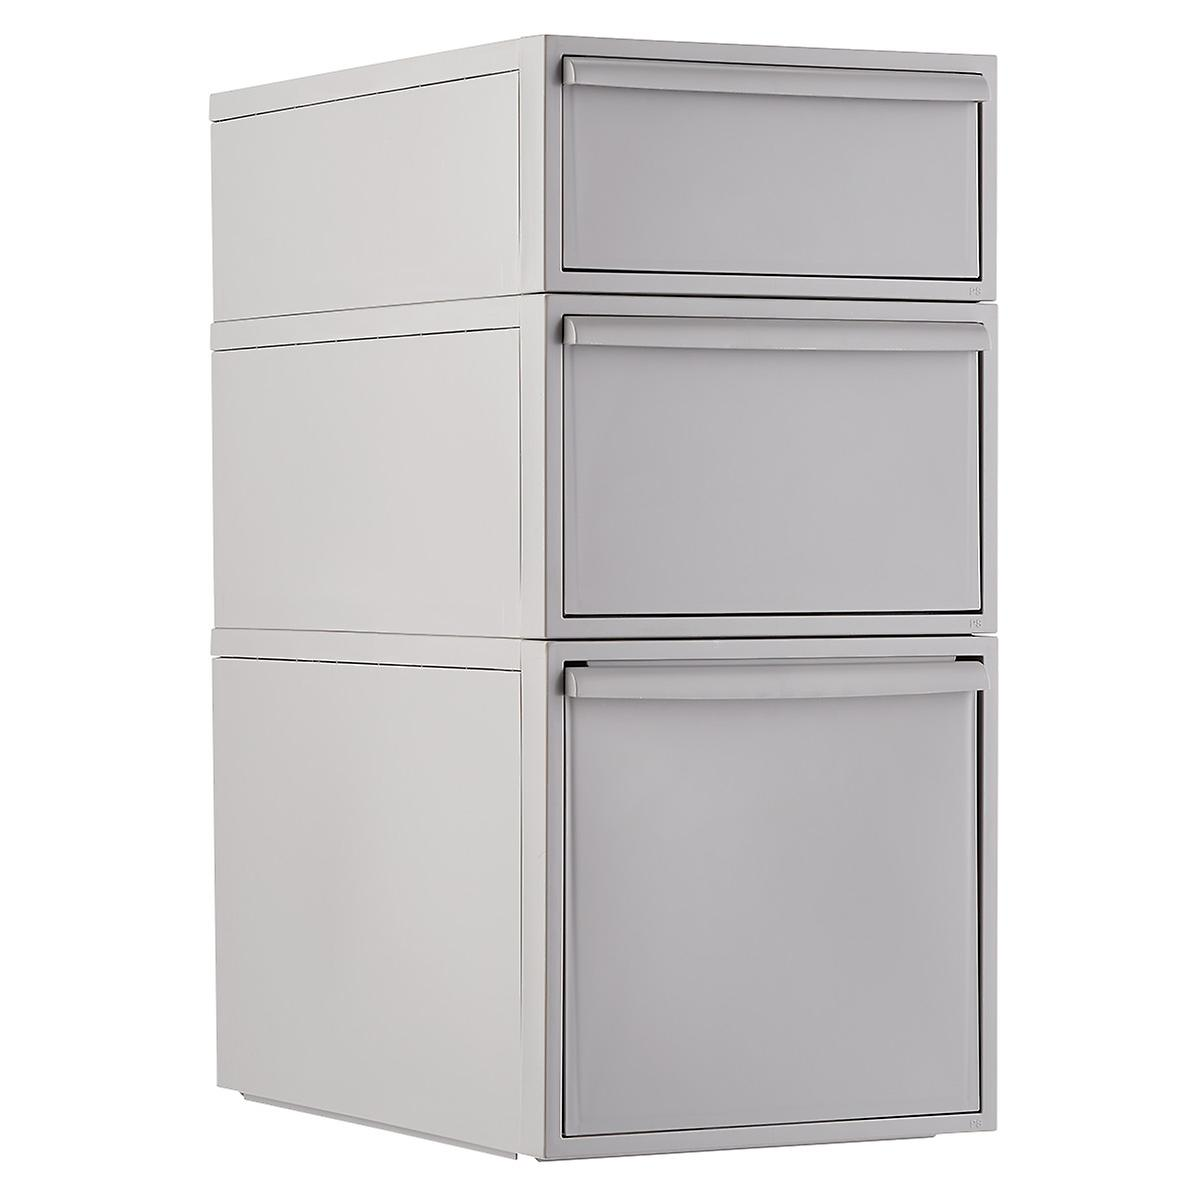 Like-it Light Grey Stackable Drawers